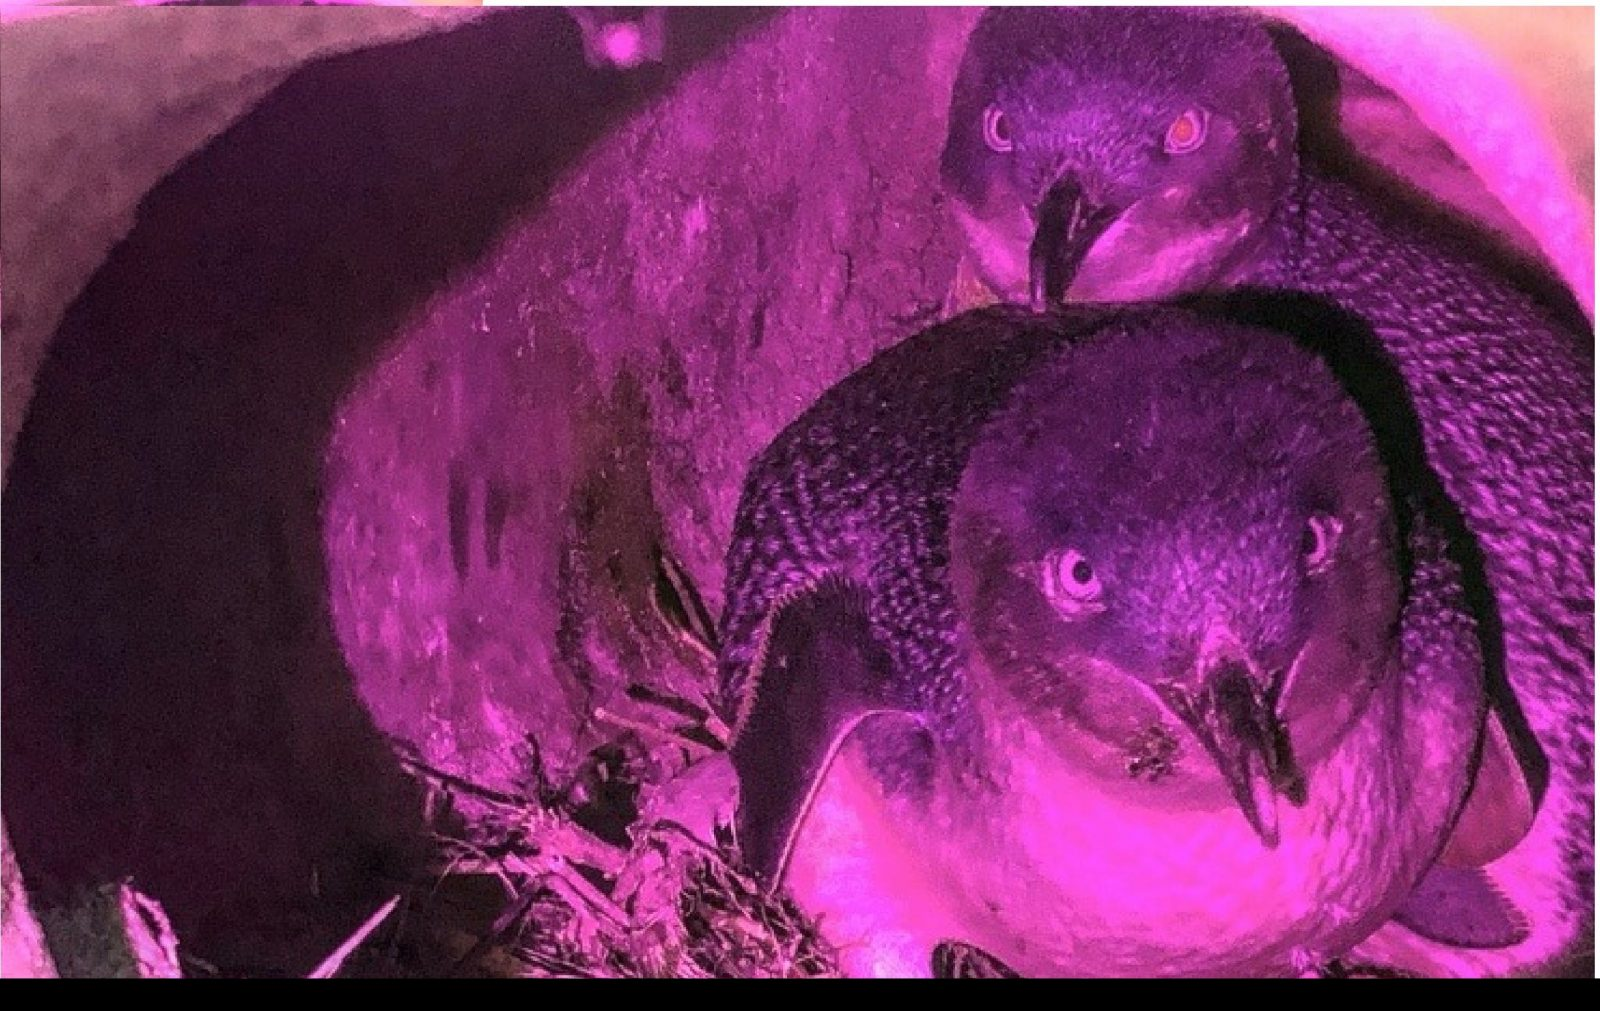 Hiding away from predators in their burrow, two adult little penguins look toward the burrow opening